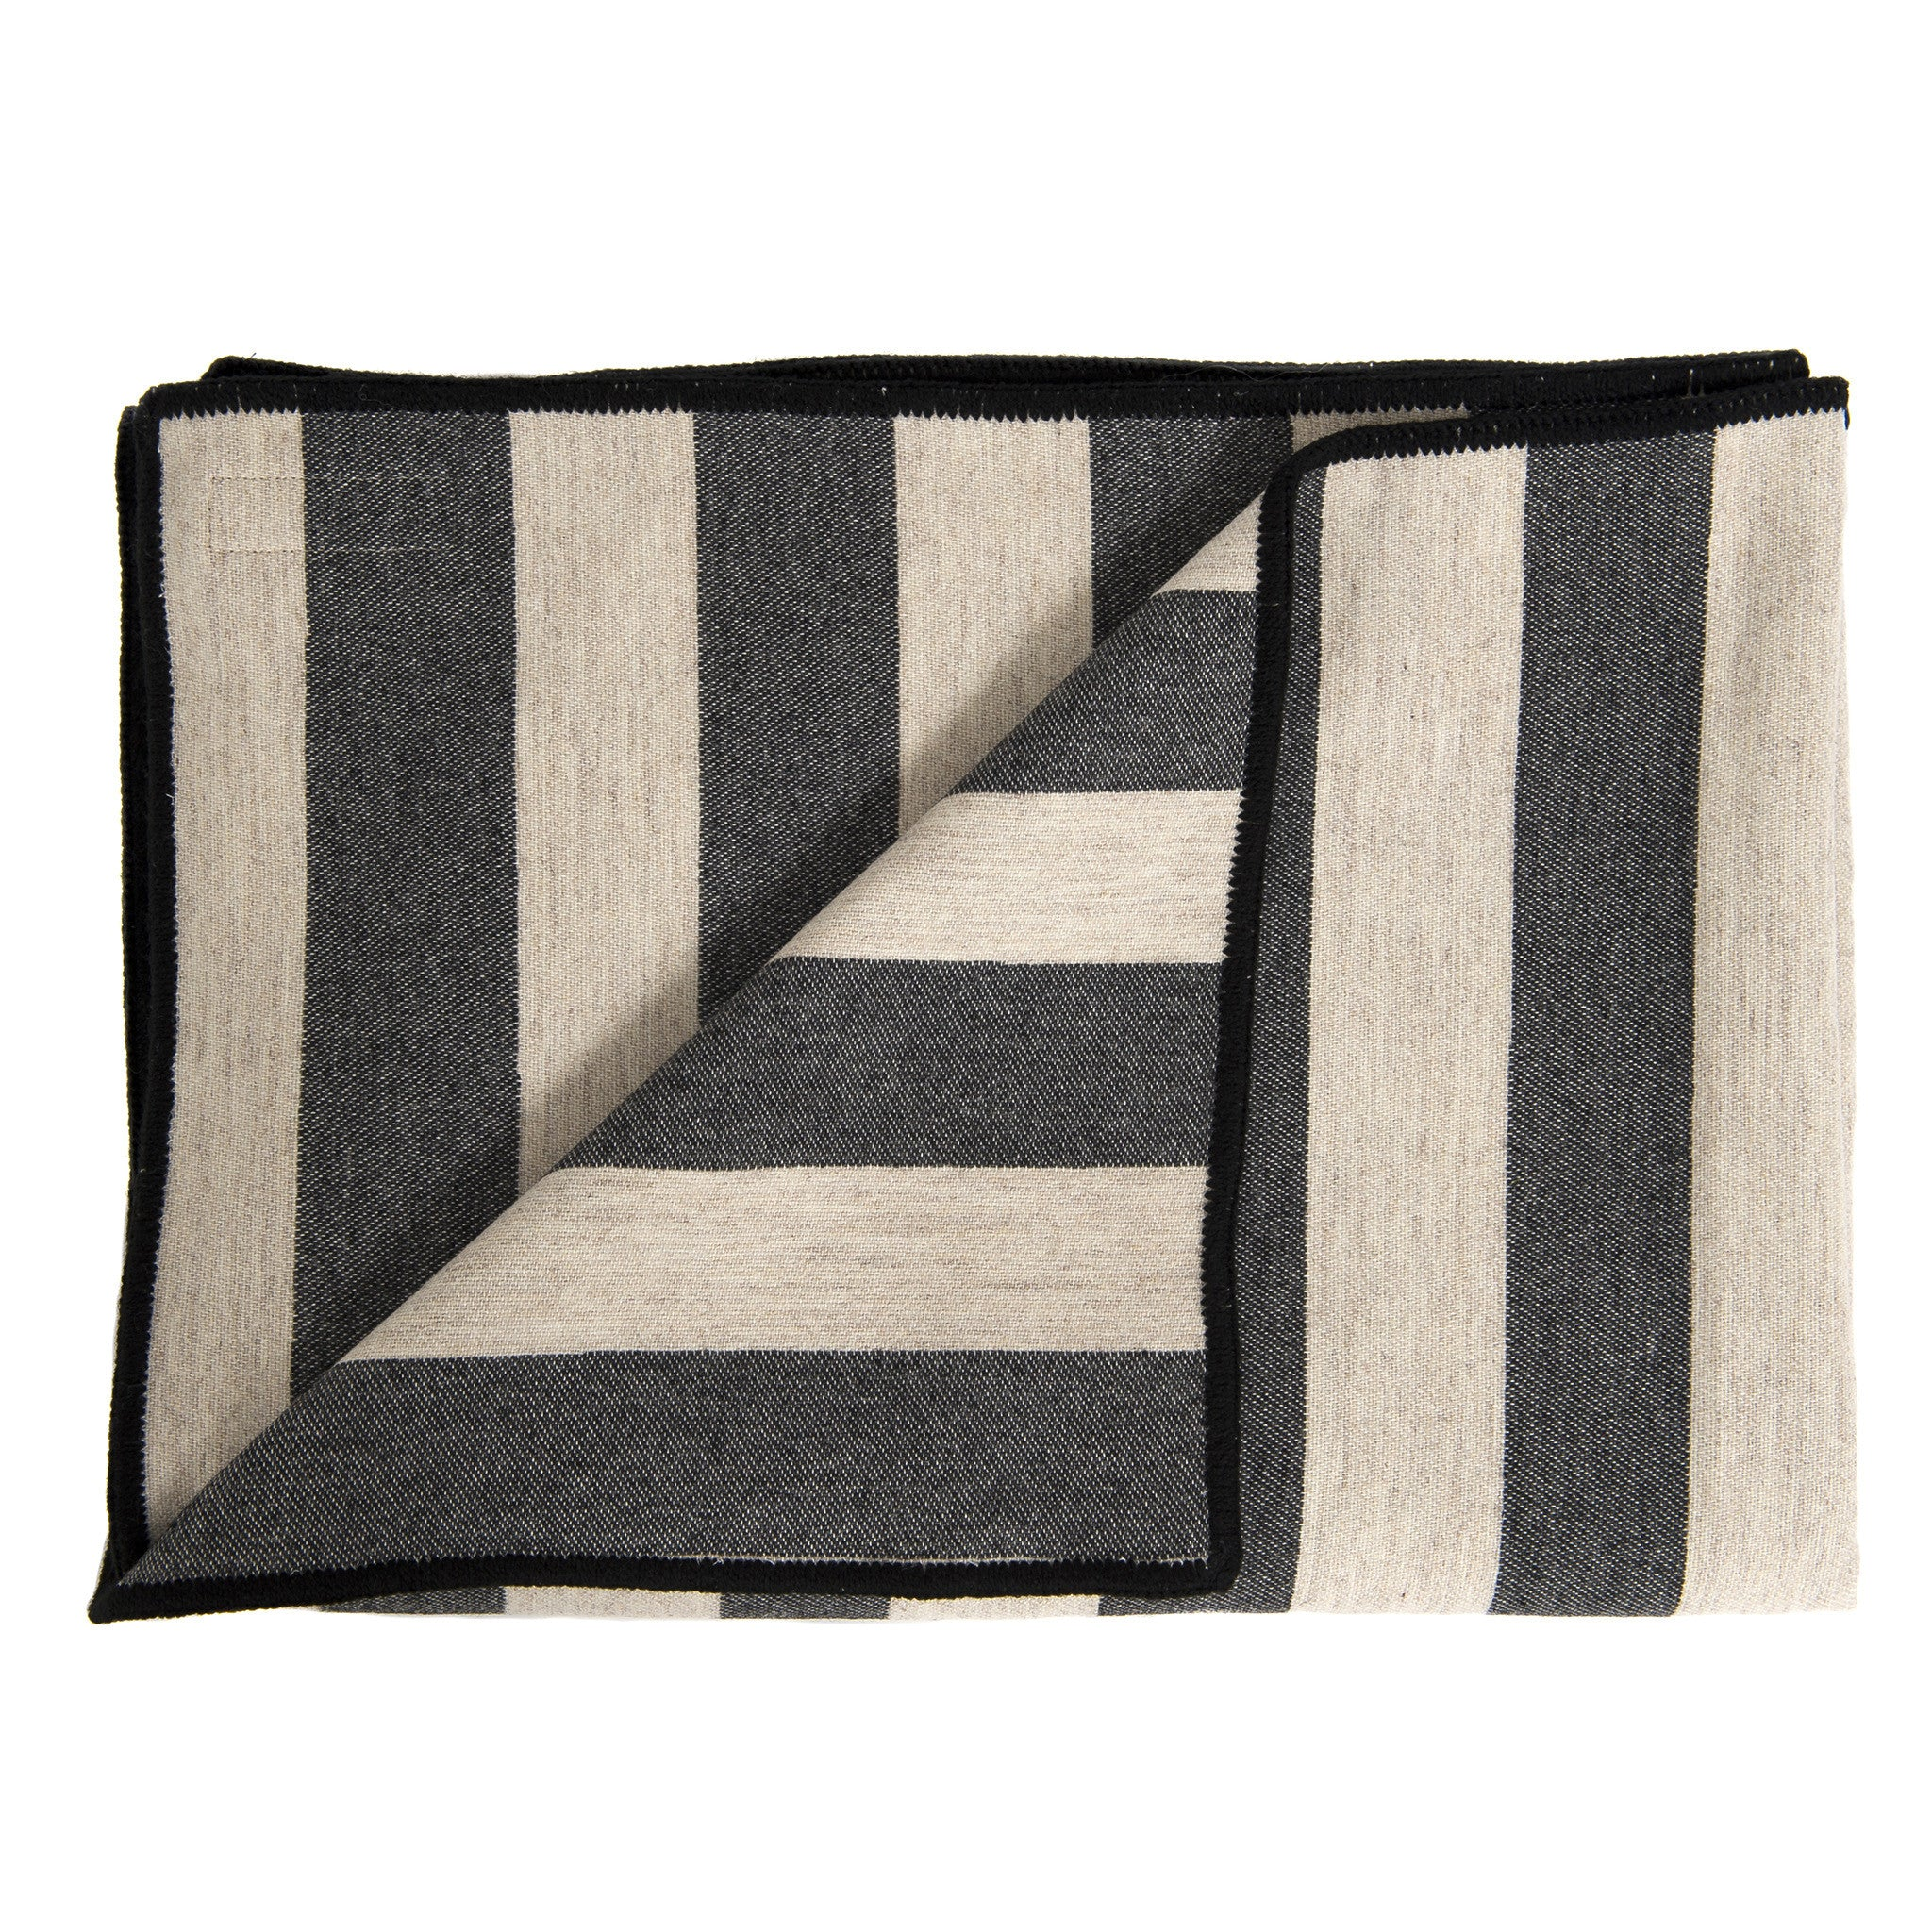 Merino Lambswool Throw - Marshall Stripe Coal and Linen Throw - Tori Murphy Ltd